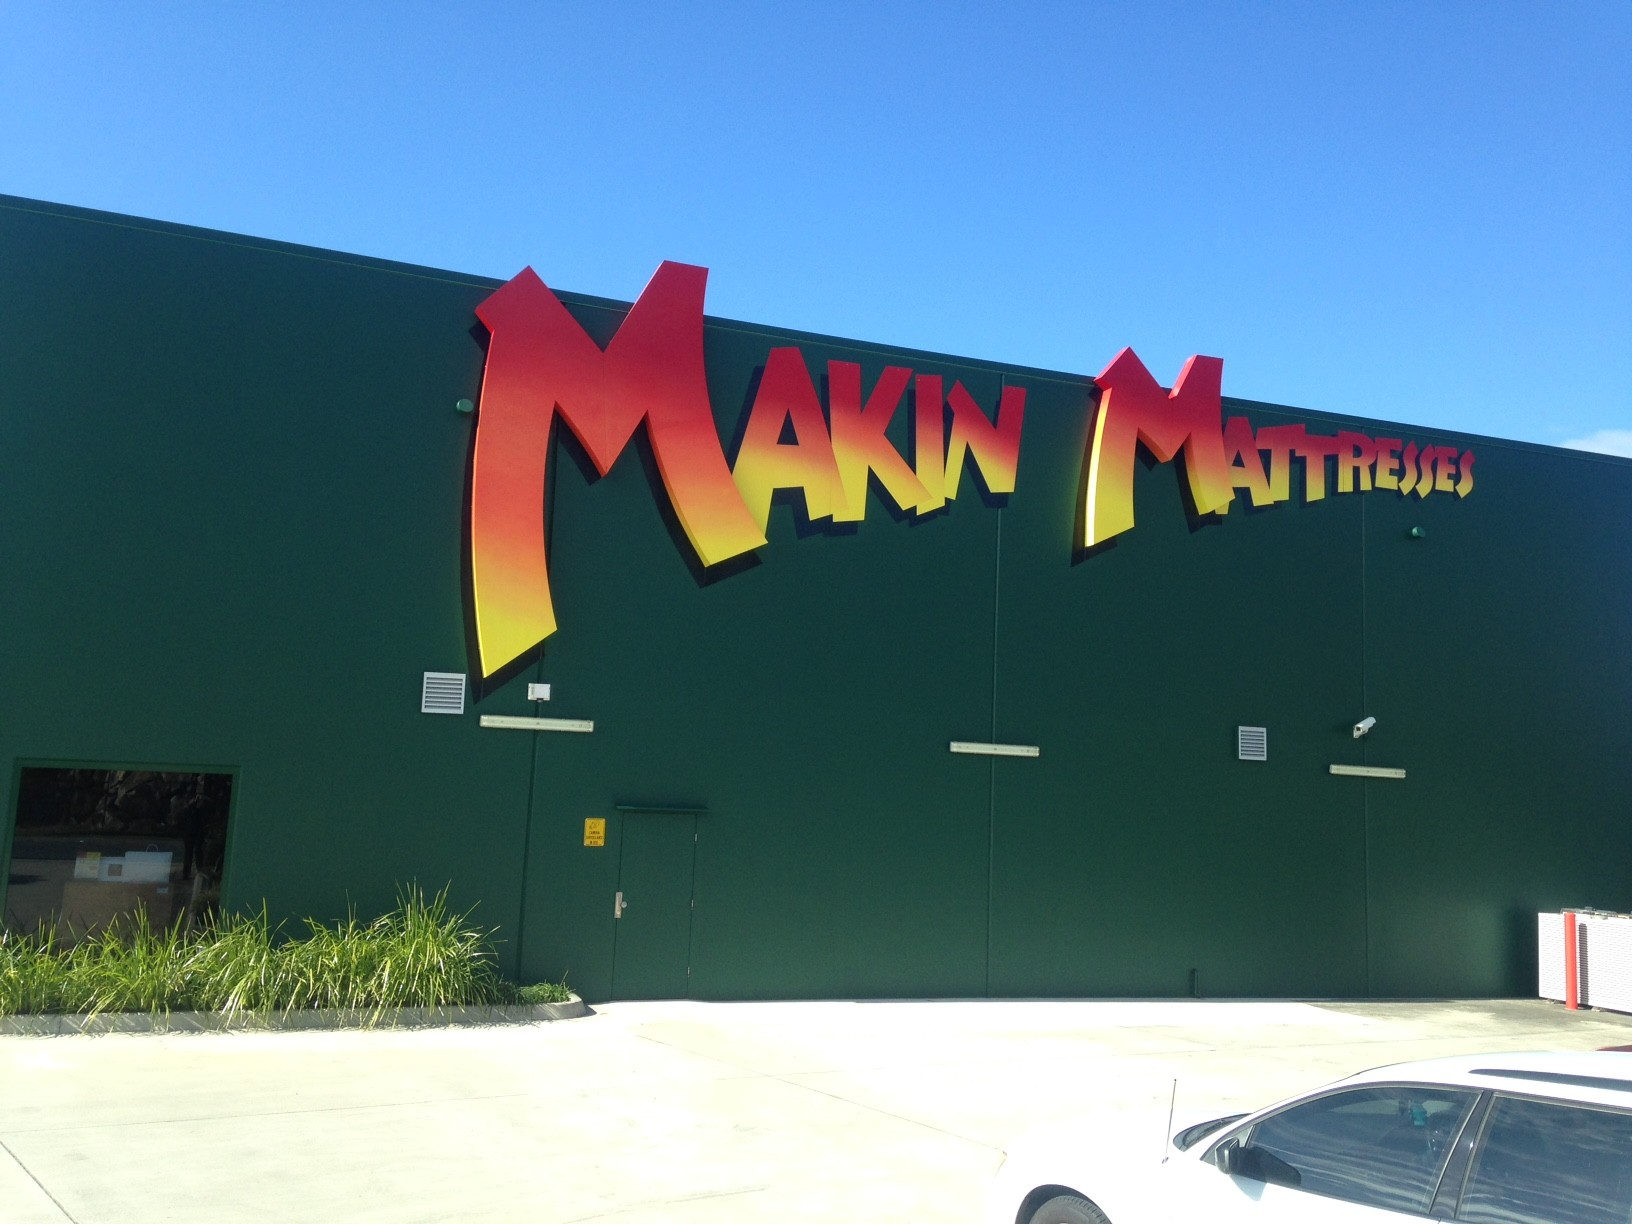 makin mattresses mattress store Brisbane